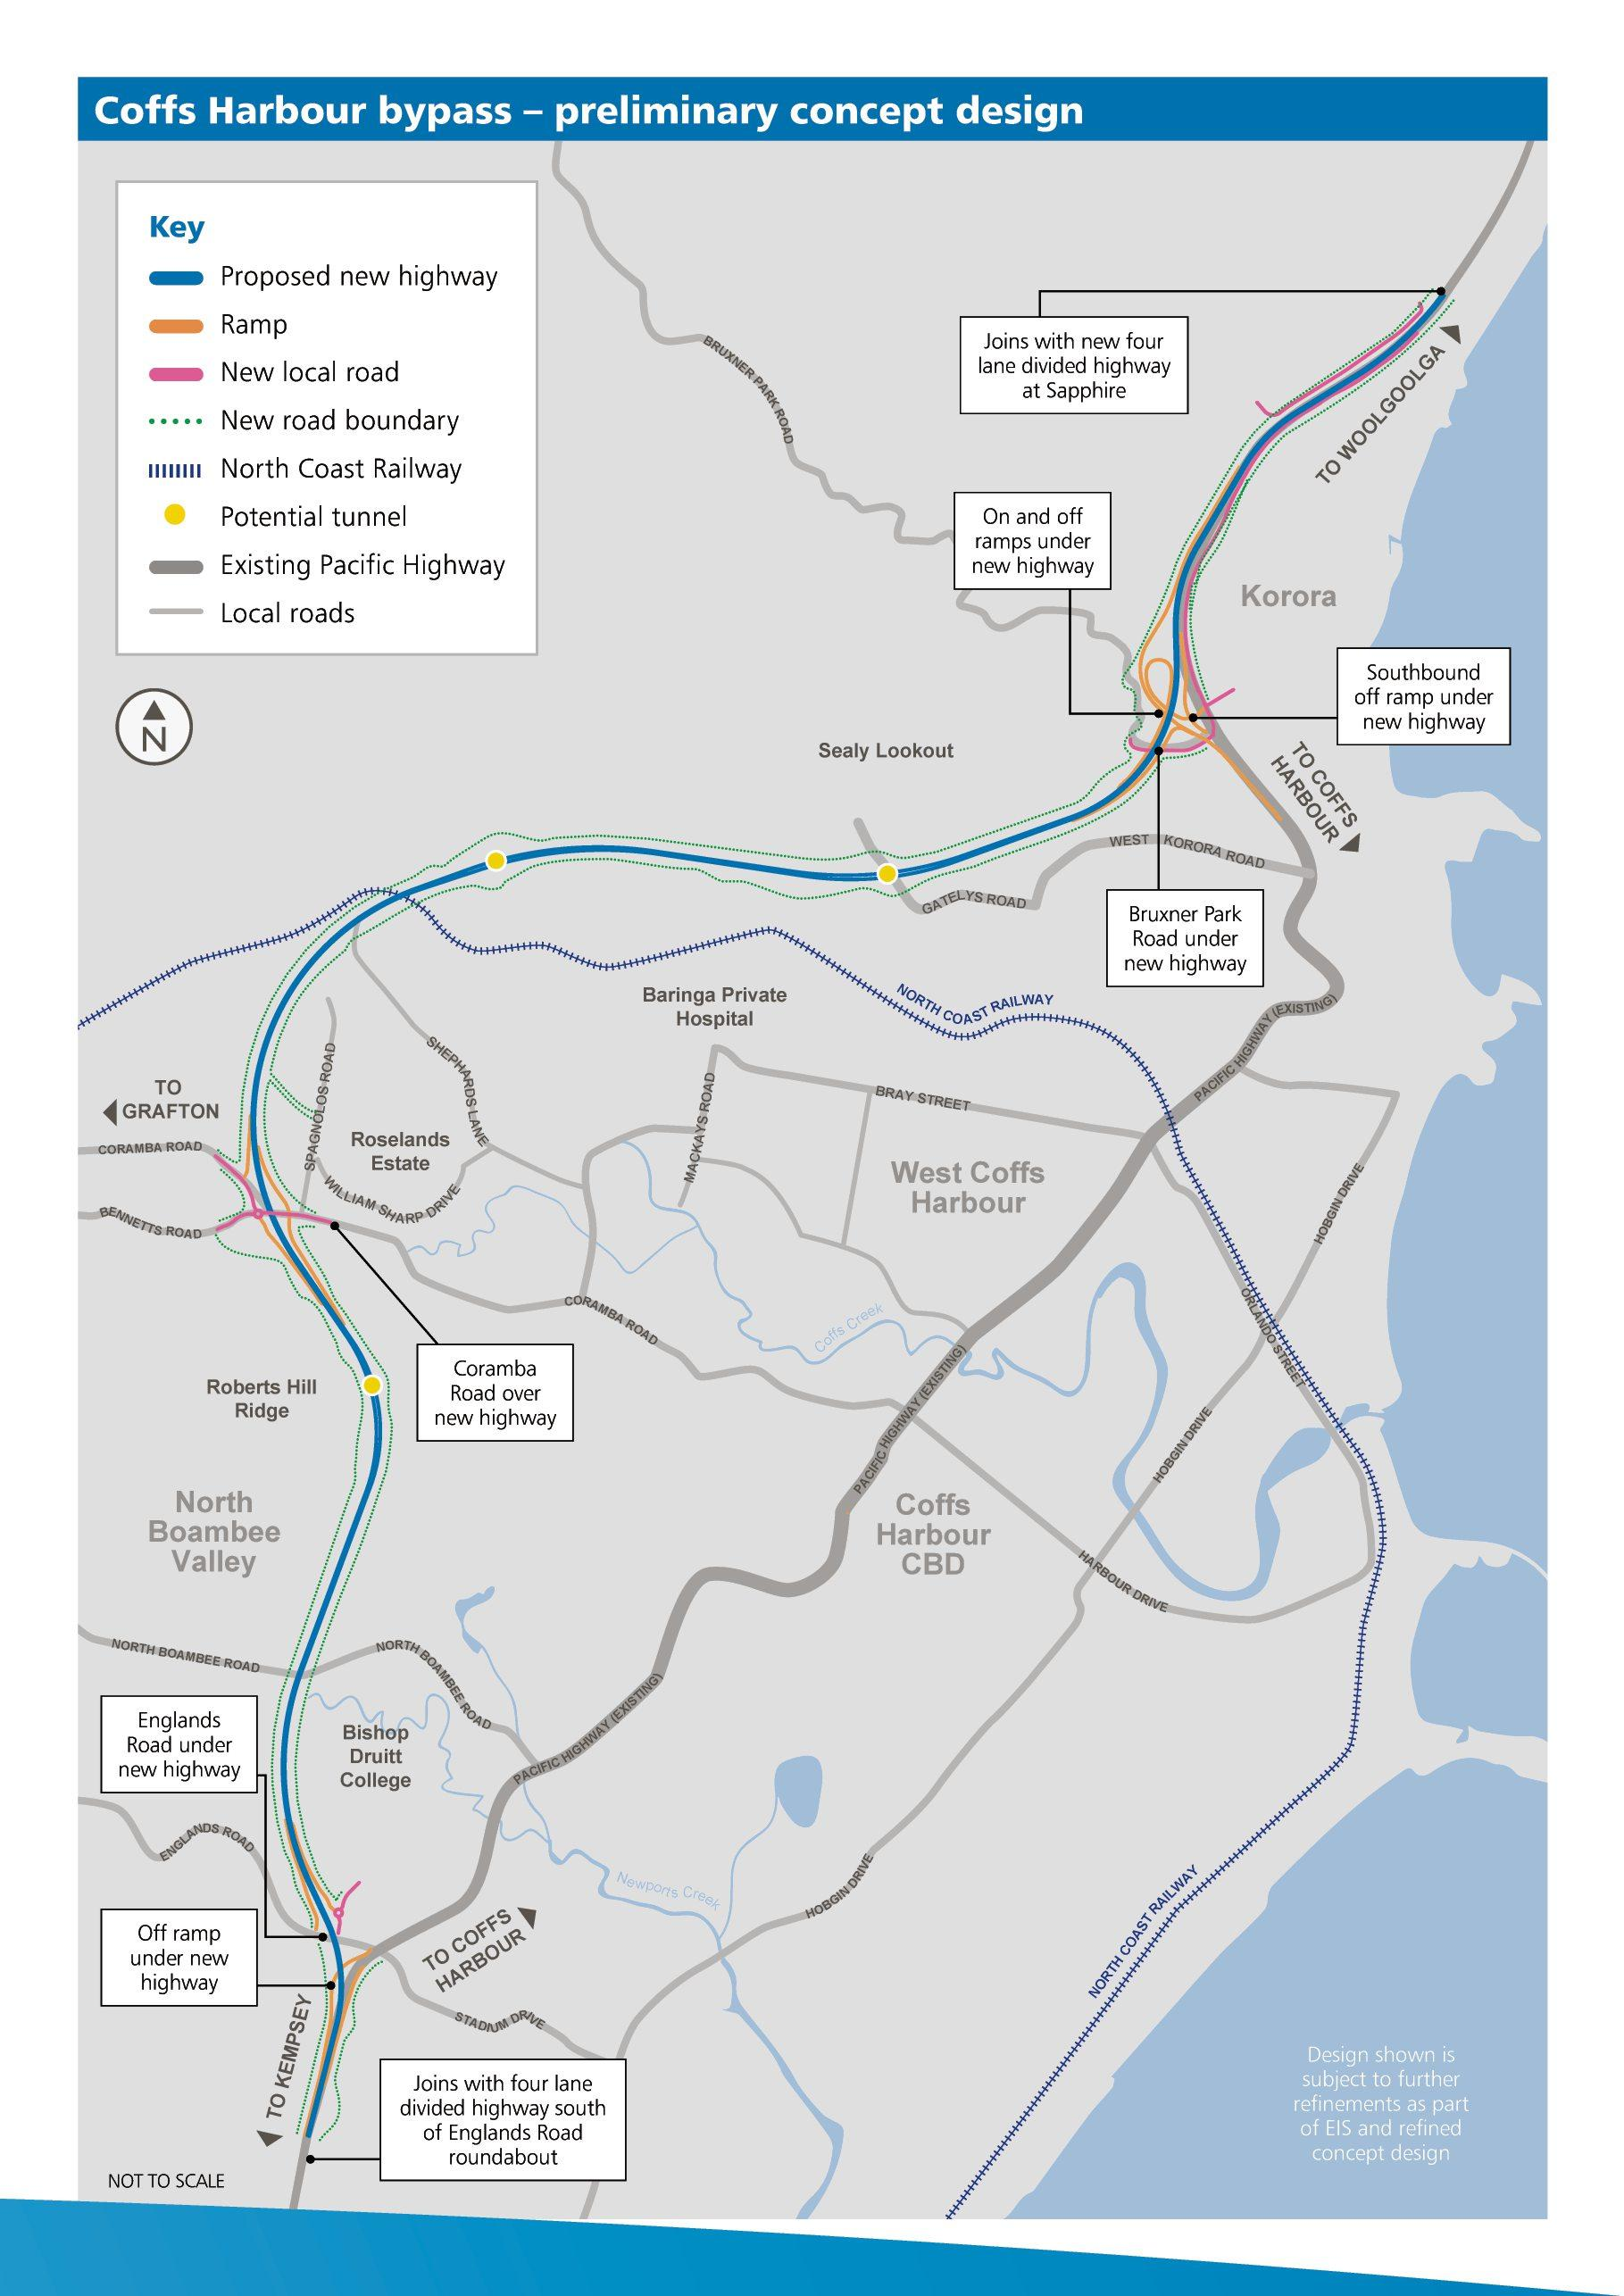 Coffs Harbour Bypass map